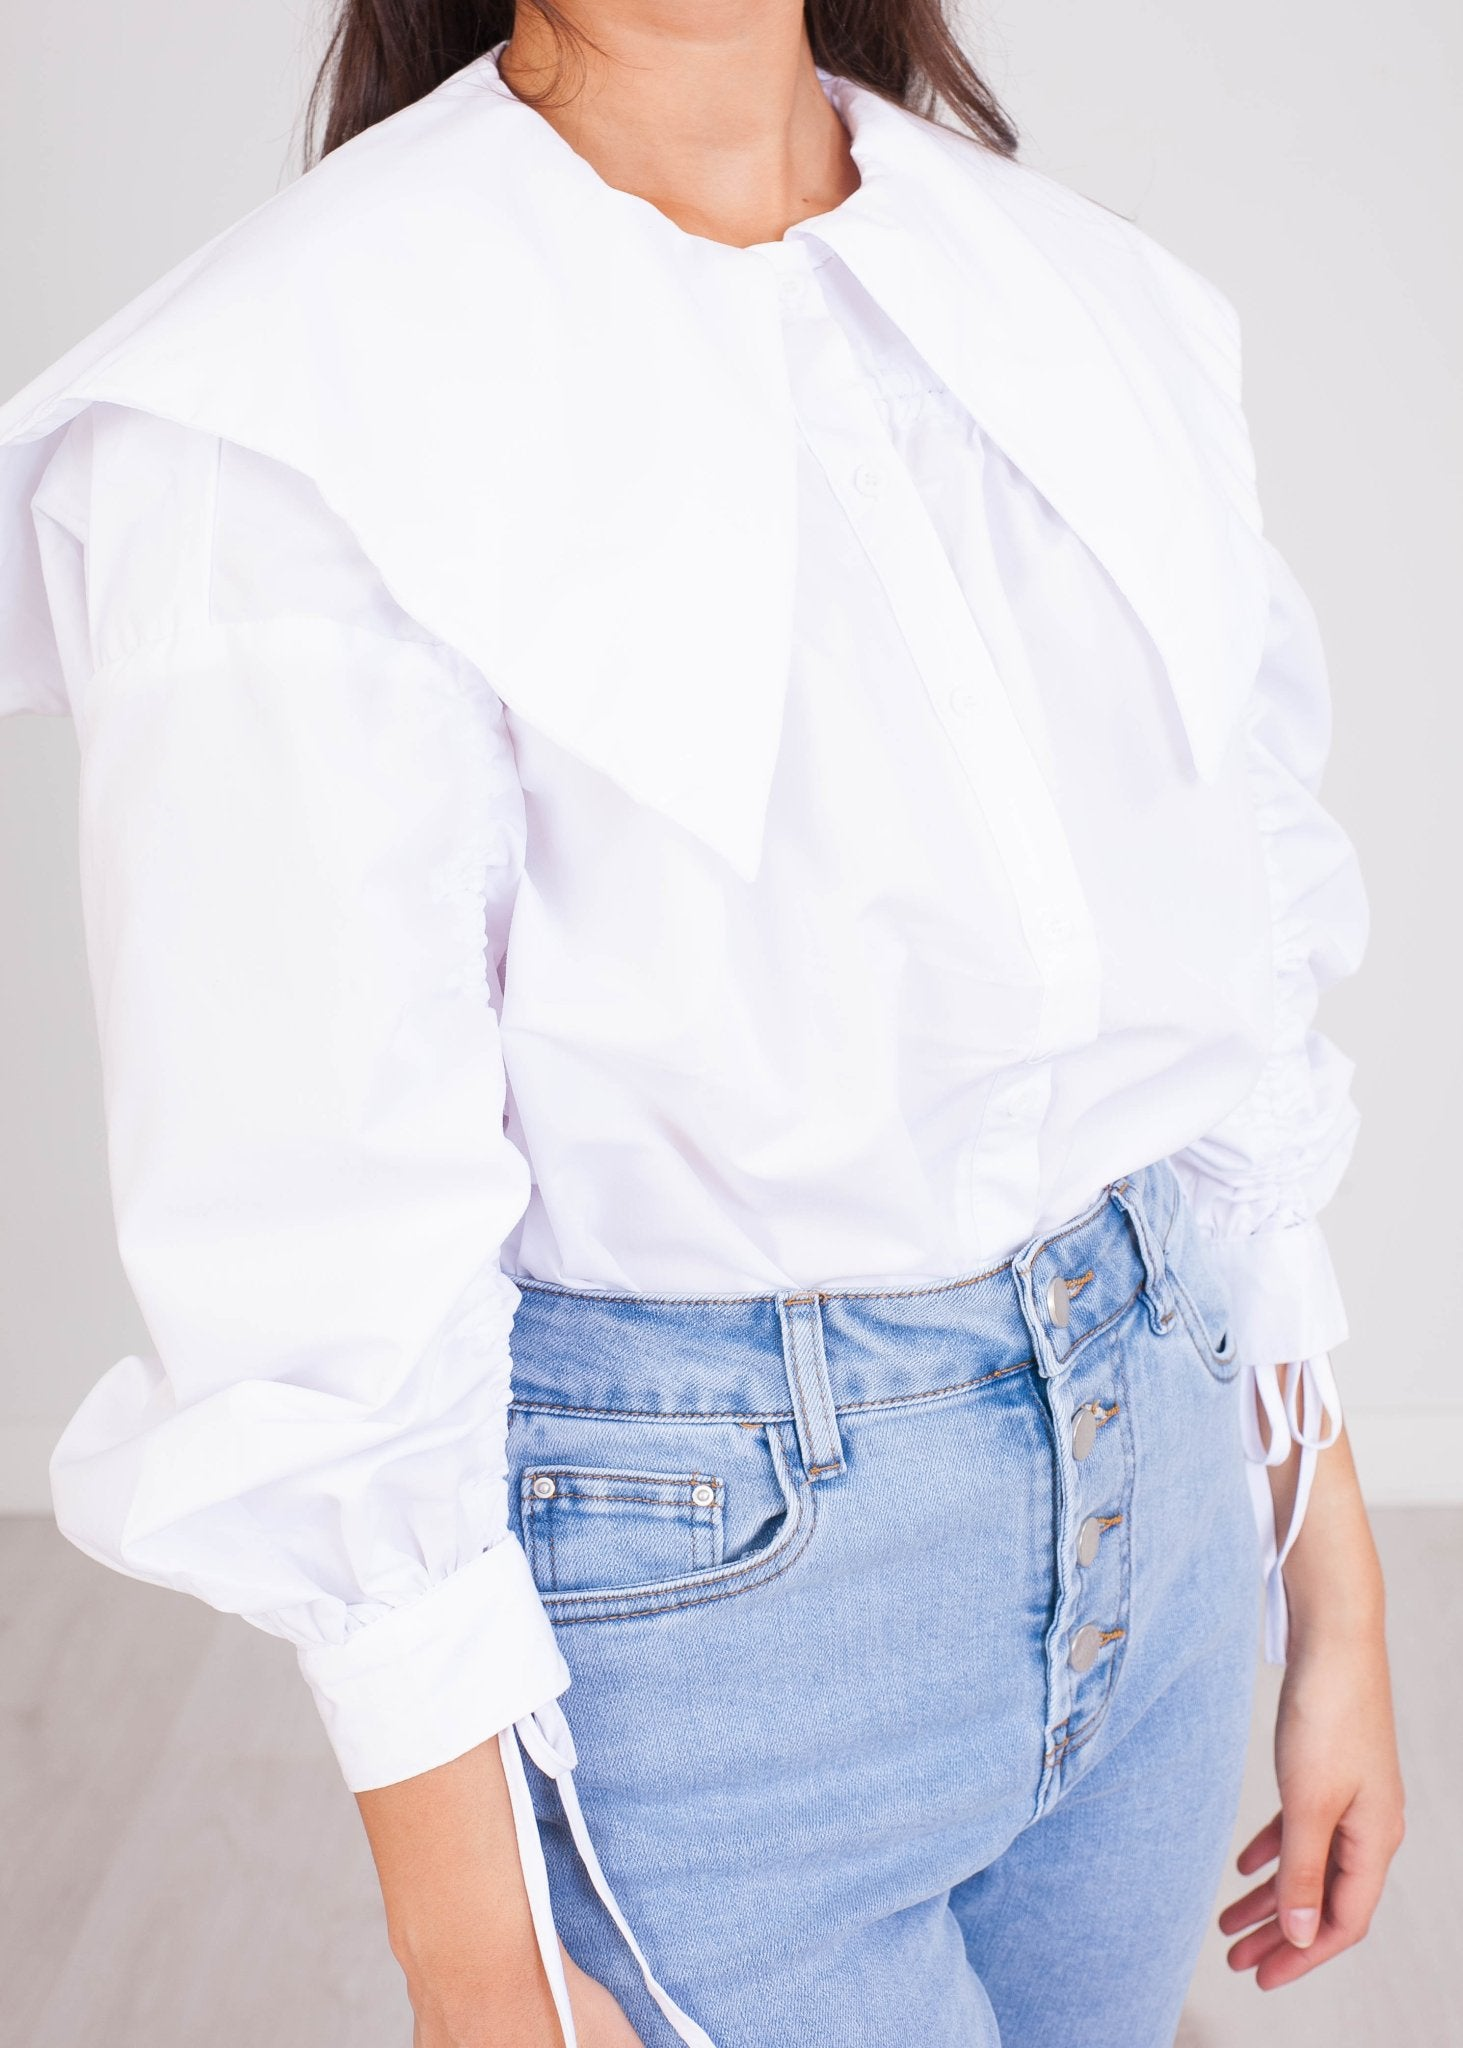 FiFi White Blouse - The Walk in Wardrobe